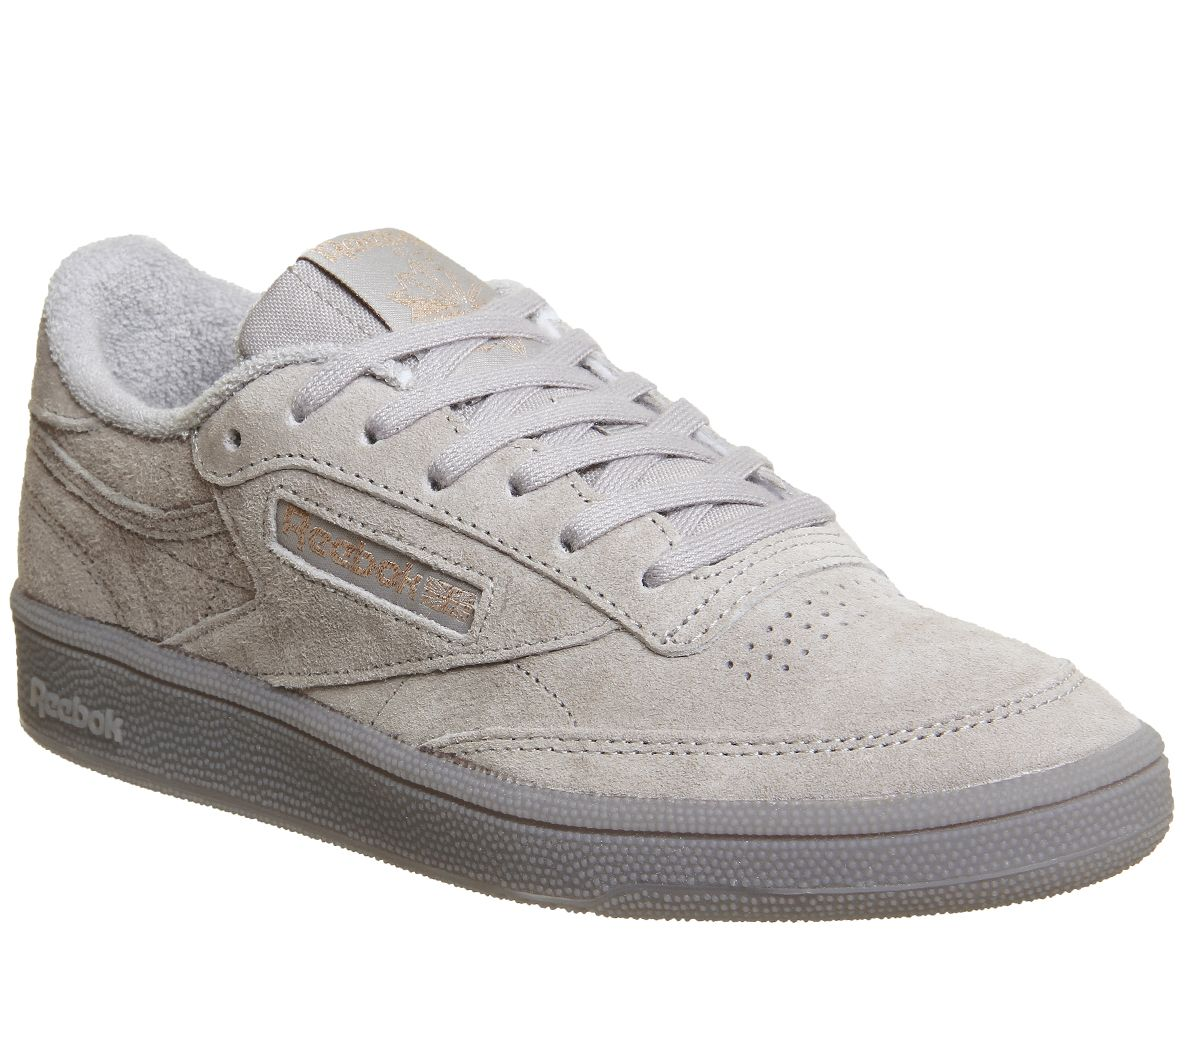 53383e3aa86 Reebok Club C 85 Trainers Skull Grey Rose Gold Exclusive - Hers trainers